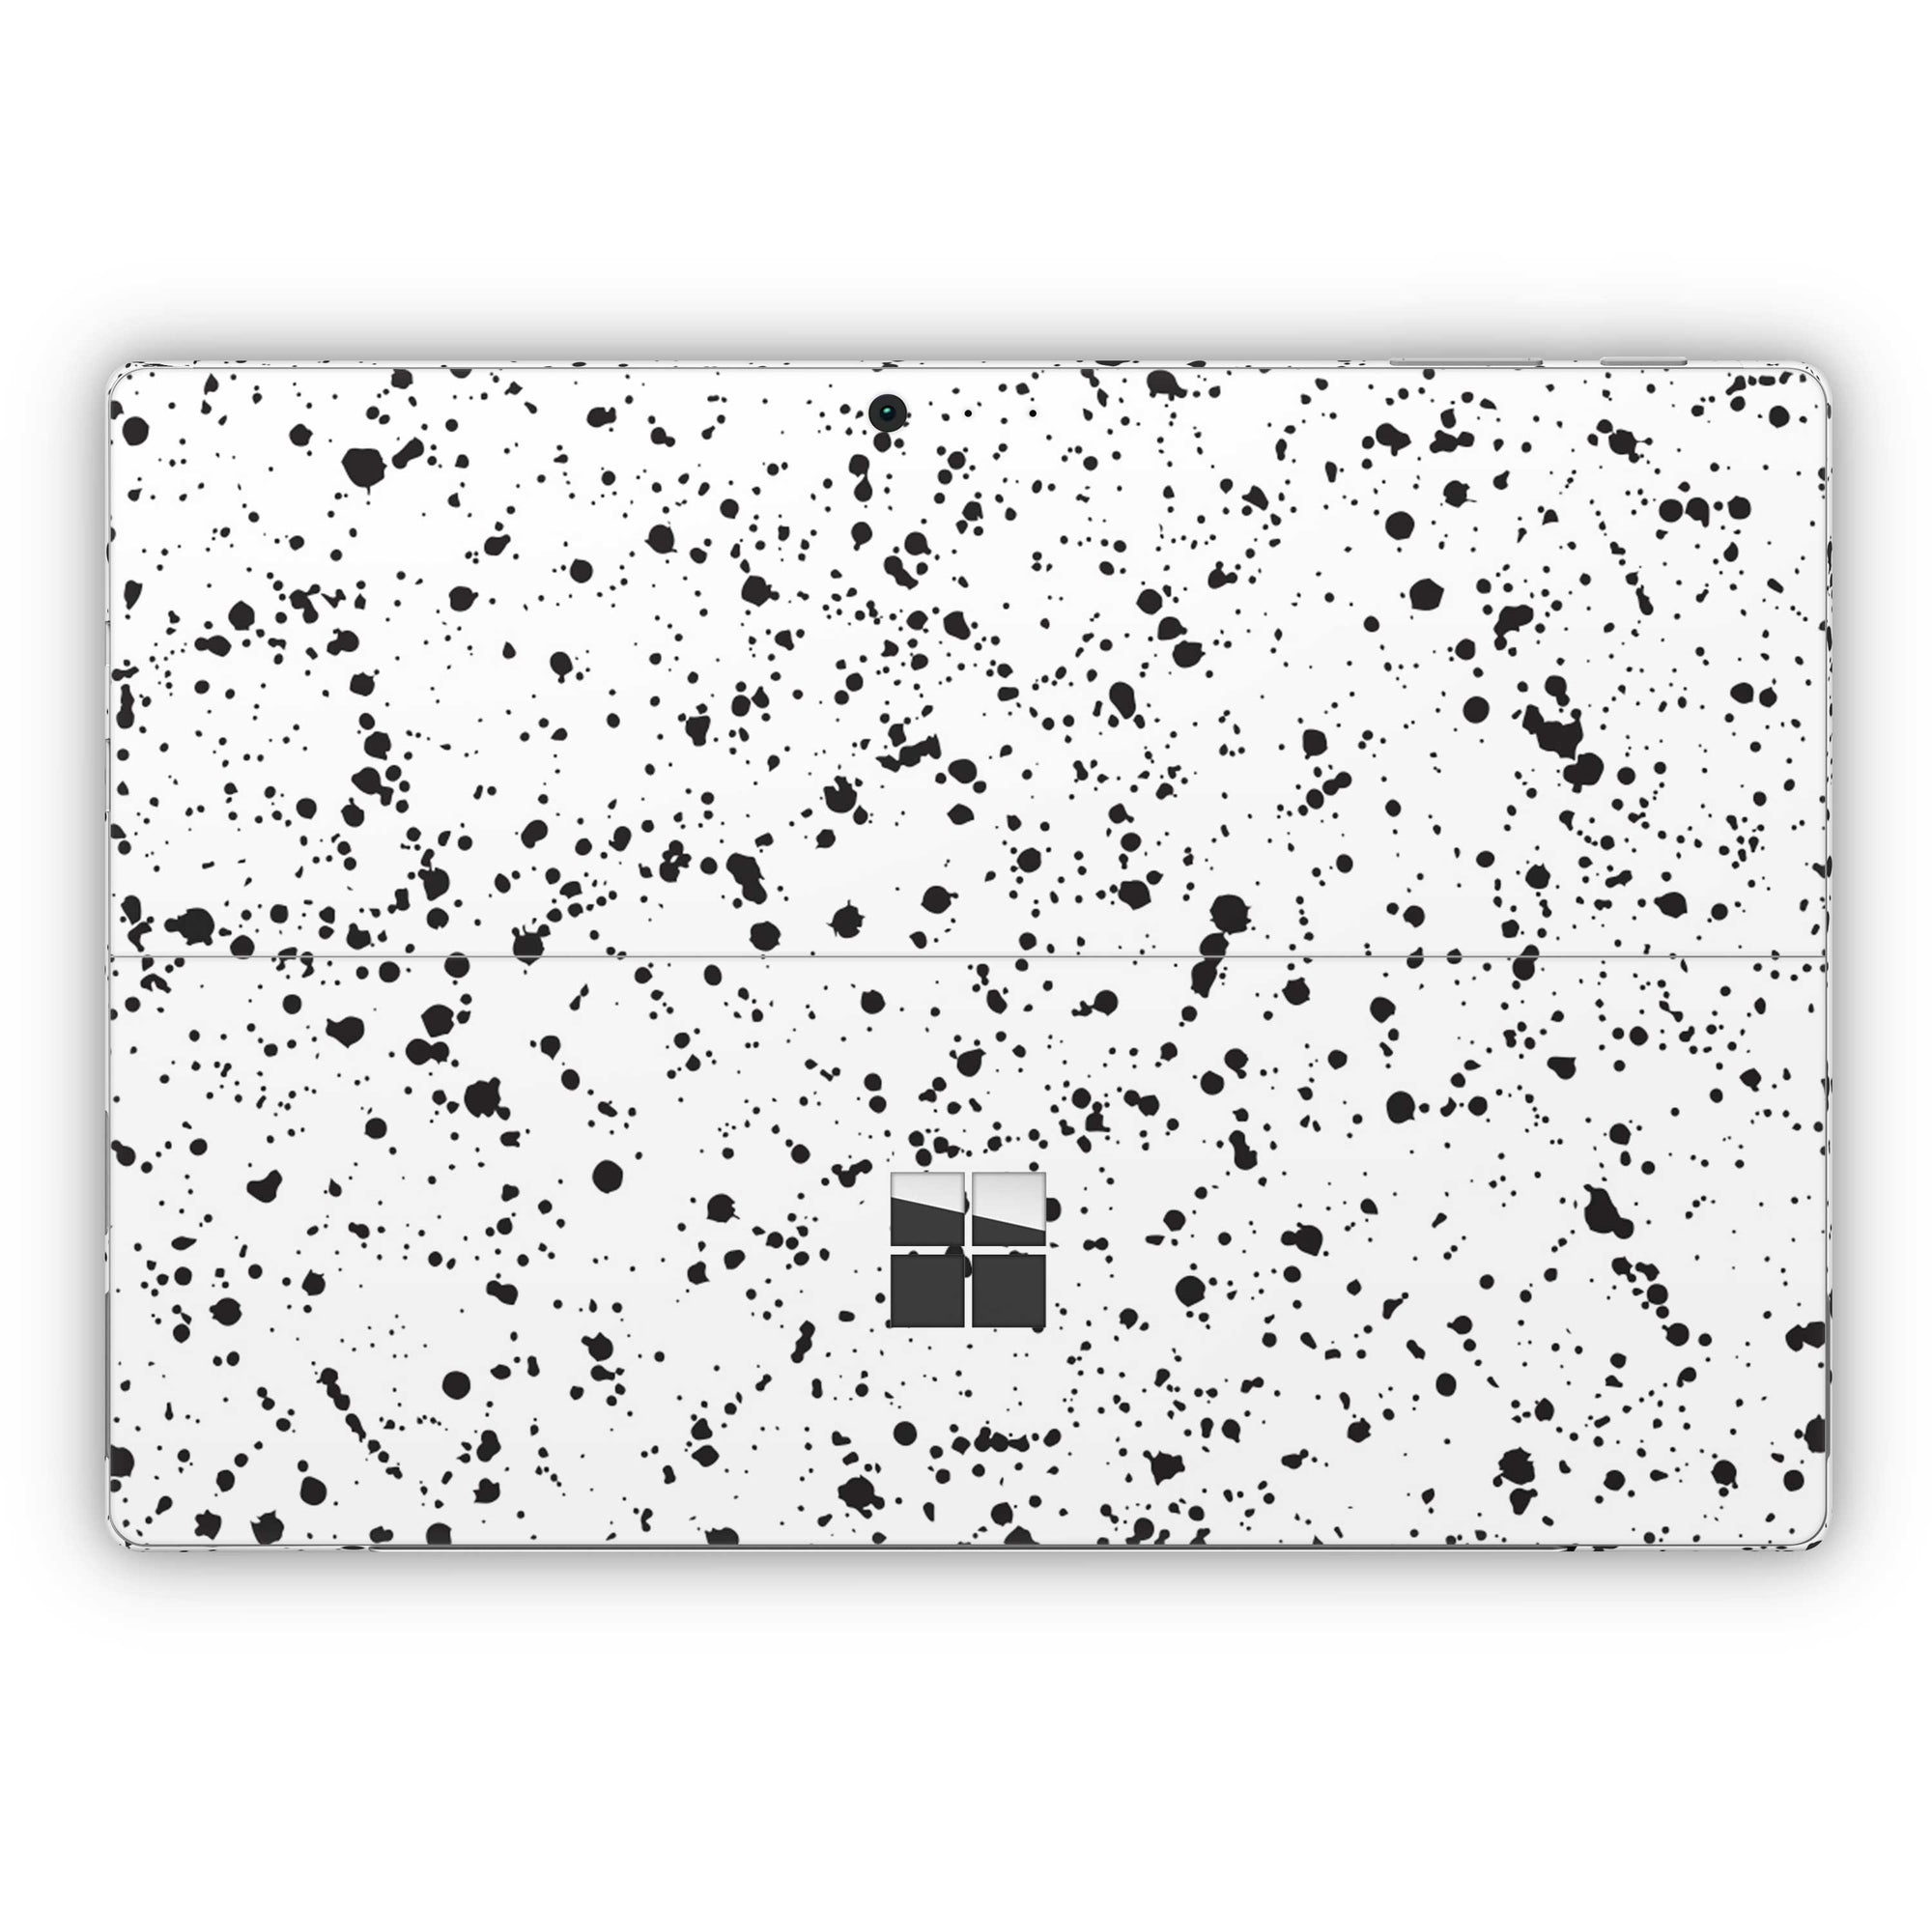 White Speckle Surface Pro 5 and Surface Pro 6 Skin